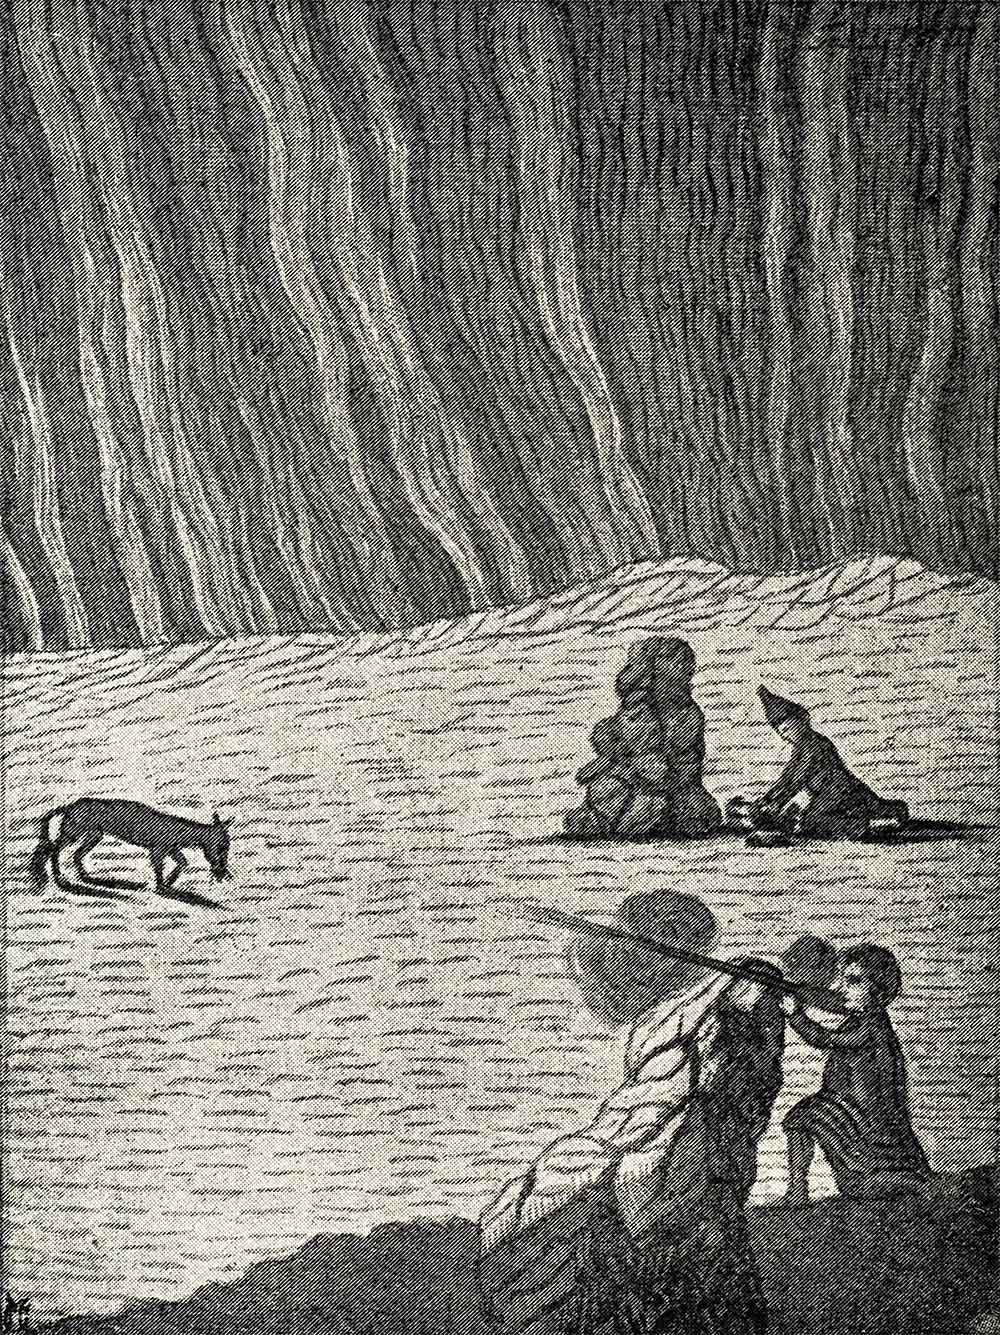 Facsimile of an old drawing of Lapps hunting by the Aurora Borealis